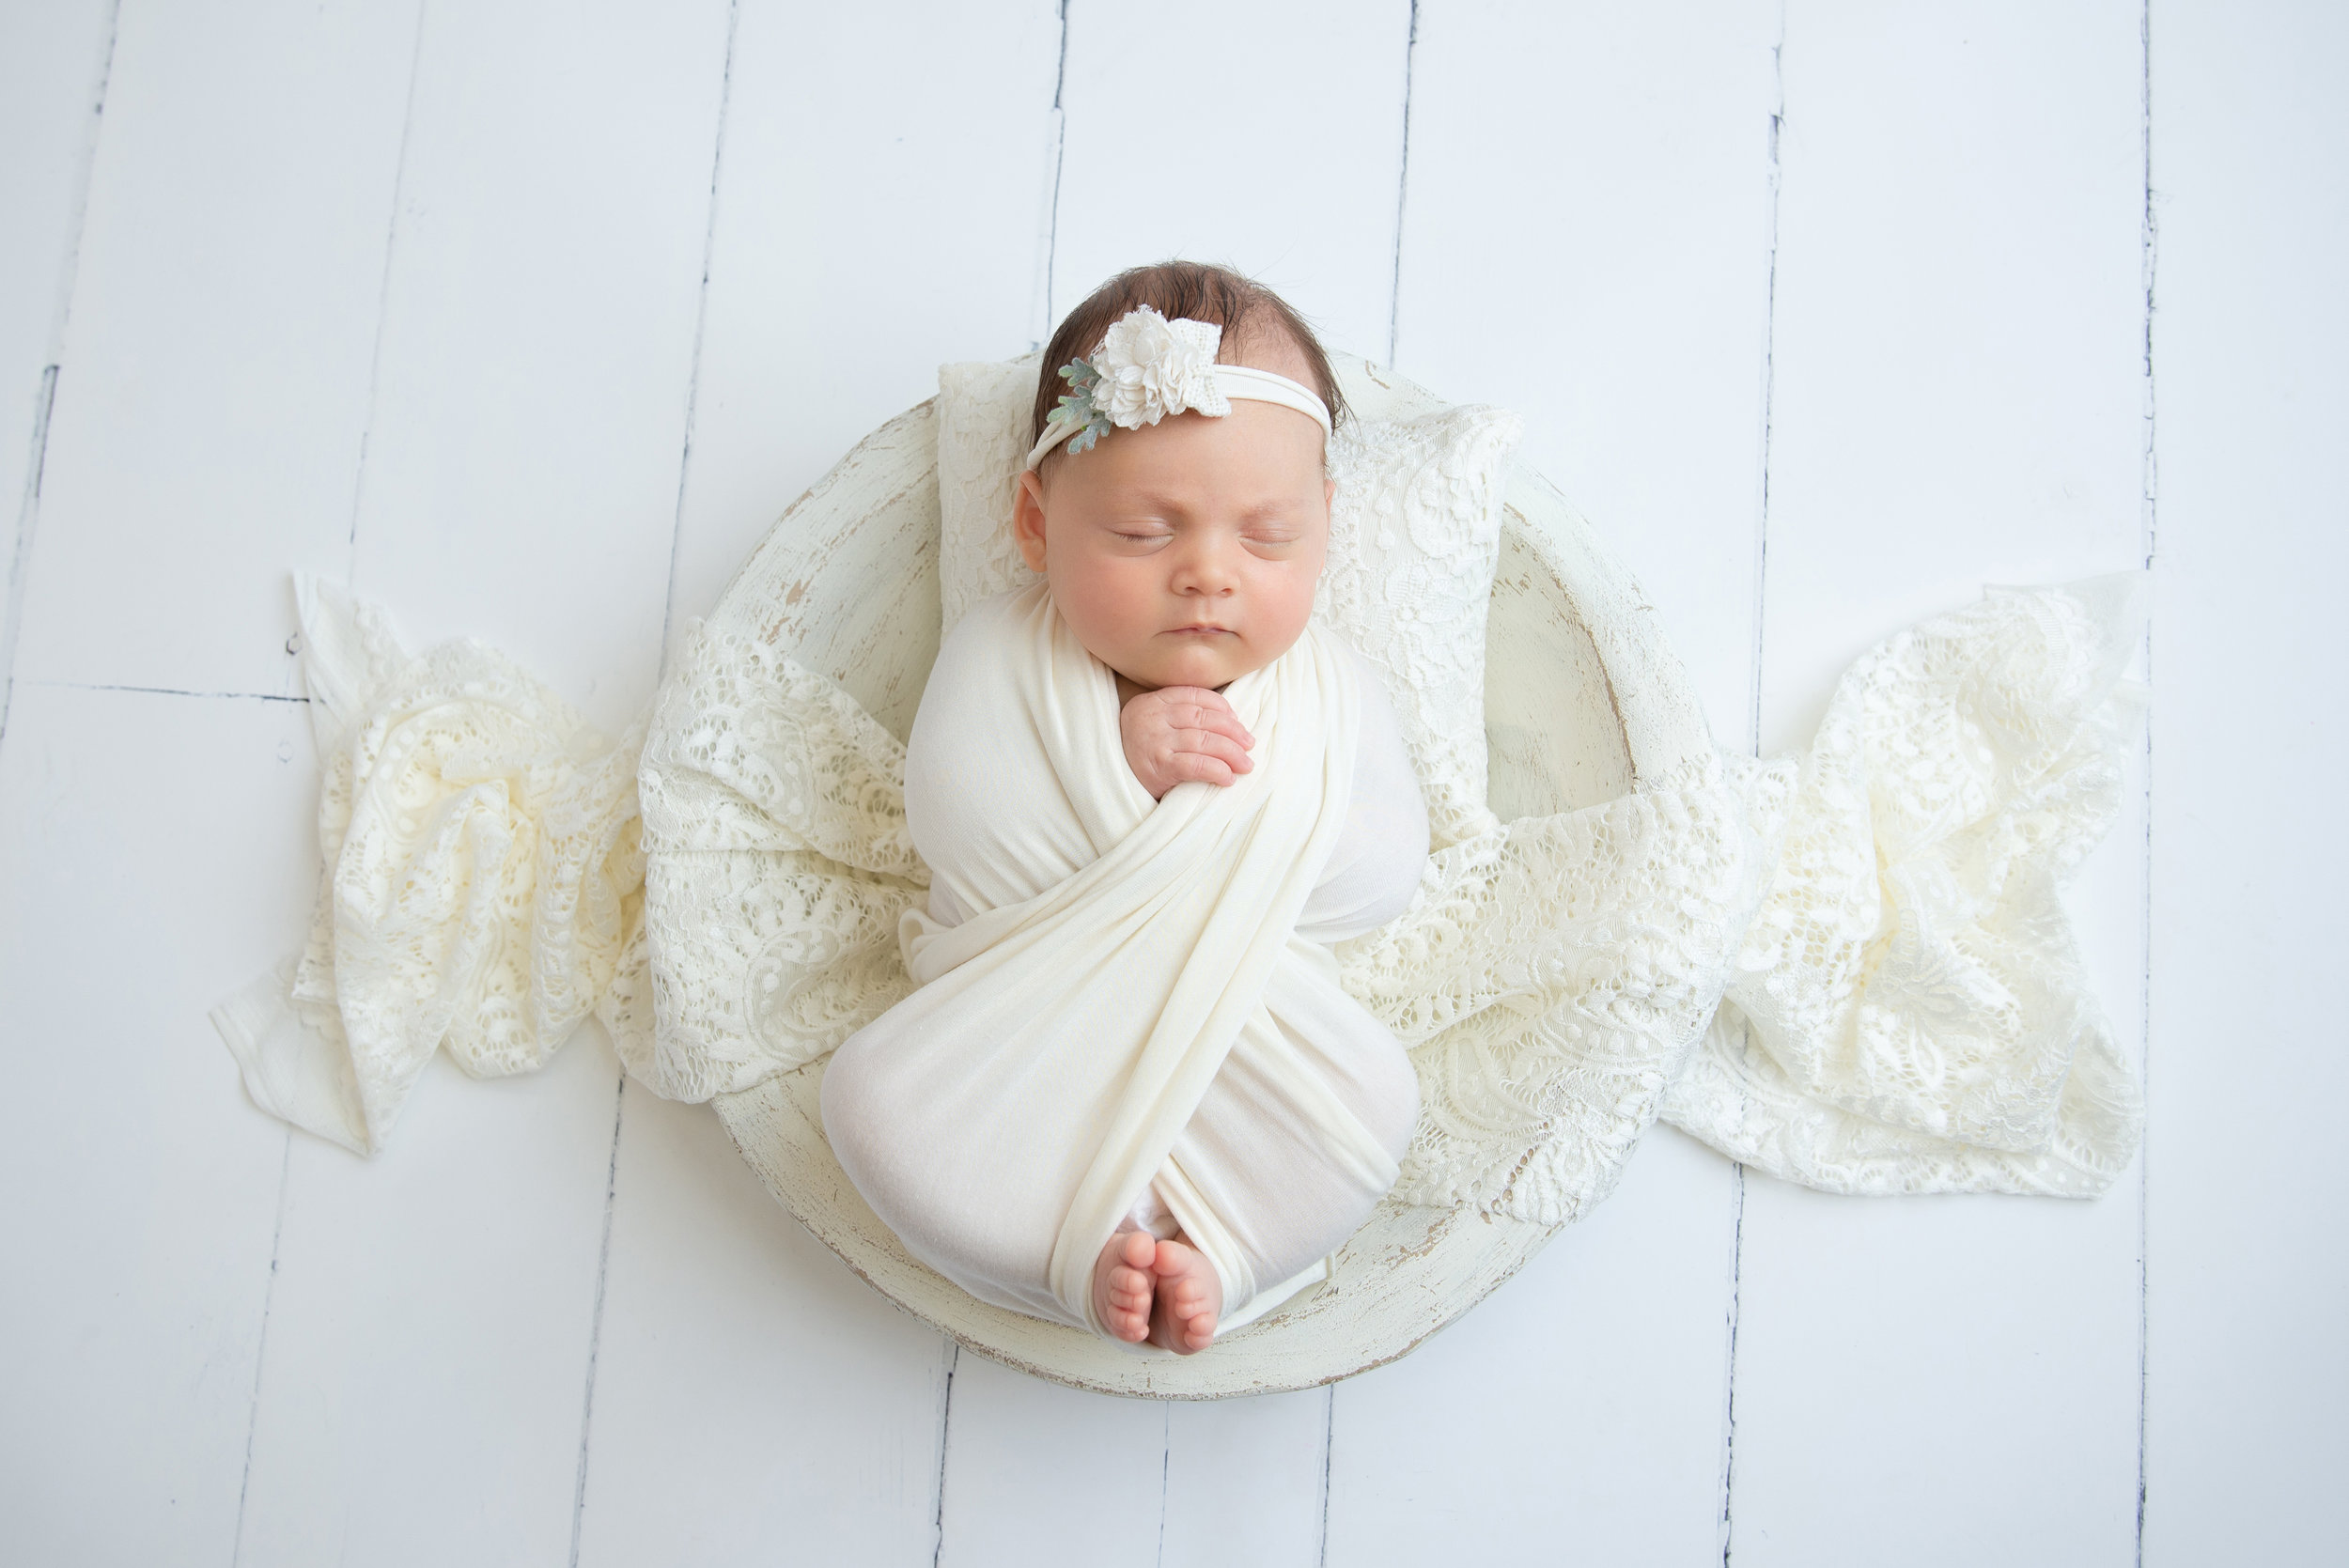 st-louis-newborn-photographer-baby-girl-with-differenrt-color-eye-lashes-in-all-neutral-cream-setup.jpg